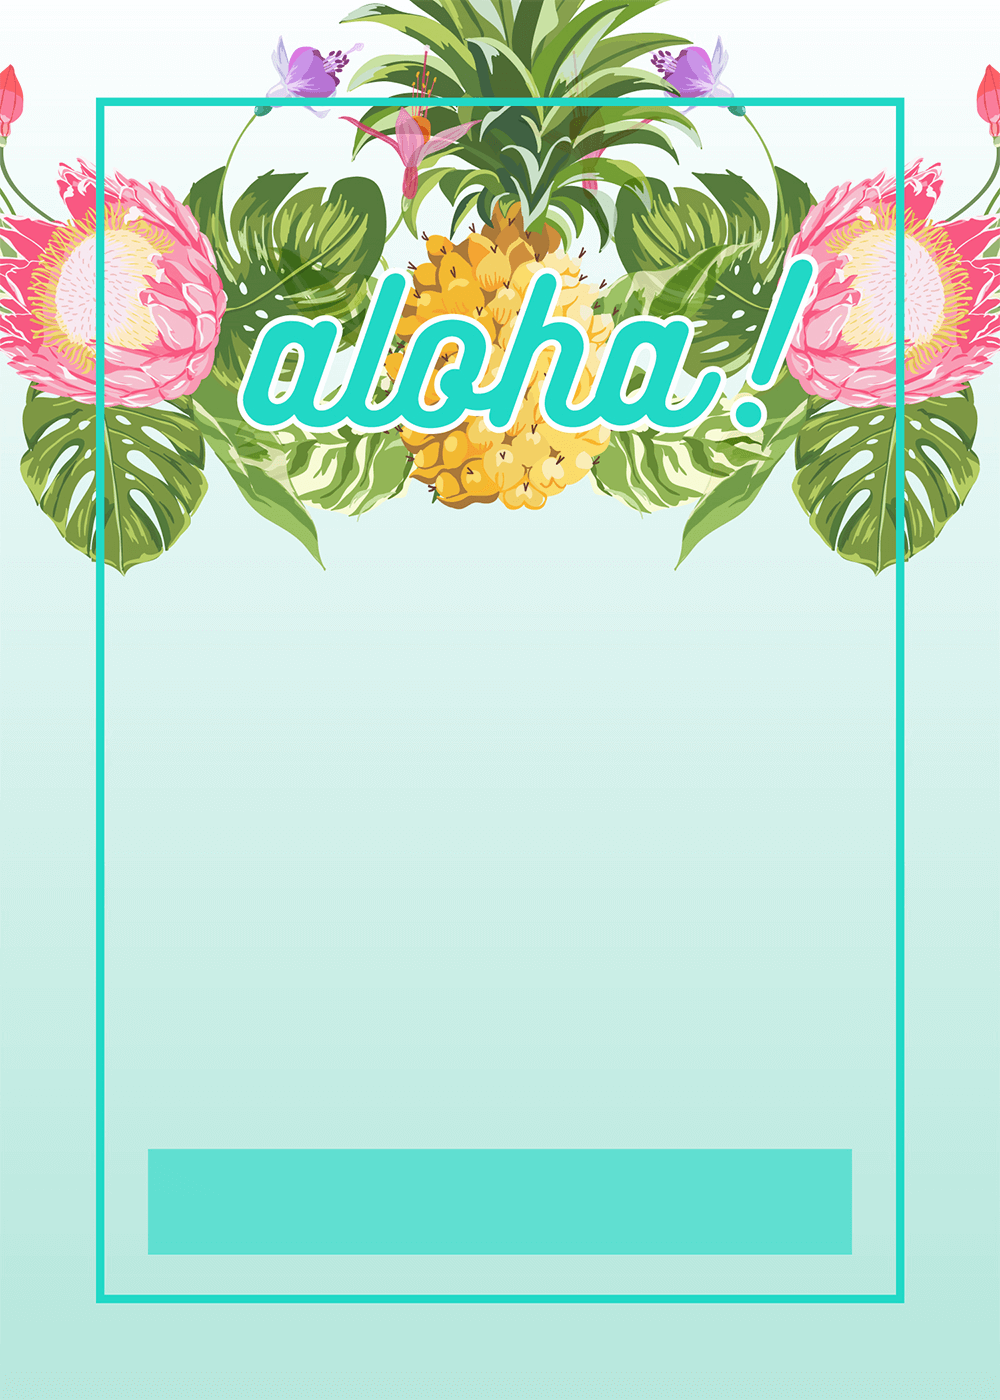 Pineapple Luau Perimeter   Free Printable Birthday Invitation Template |  Greetings Island  Birthday Invitation Template Printable